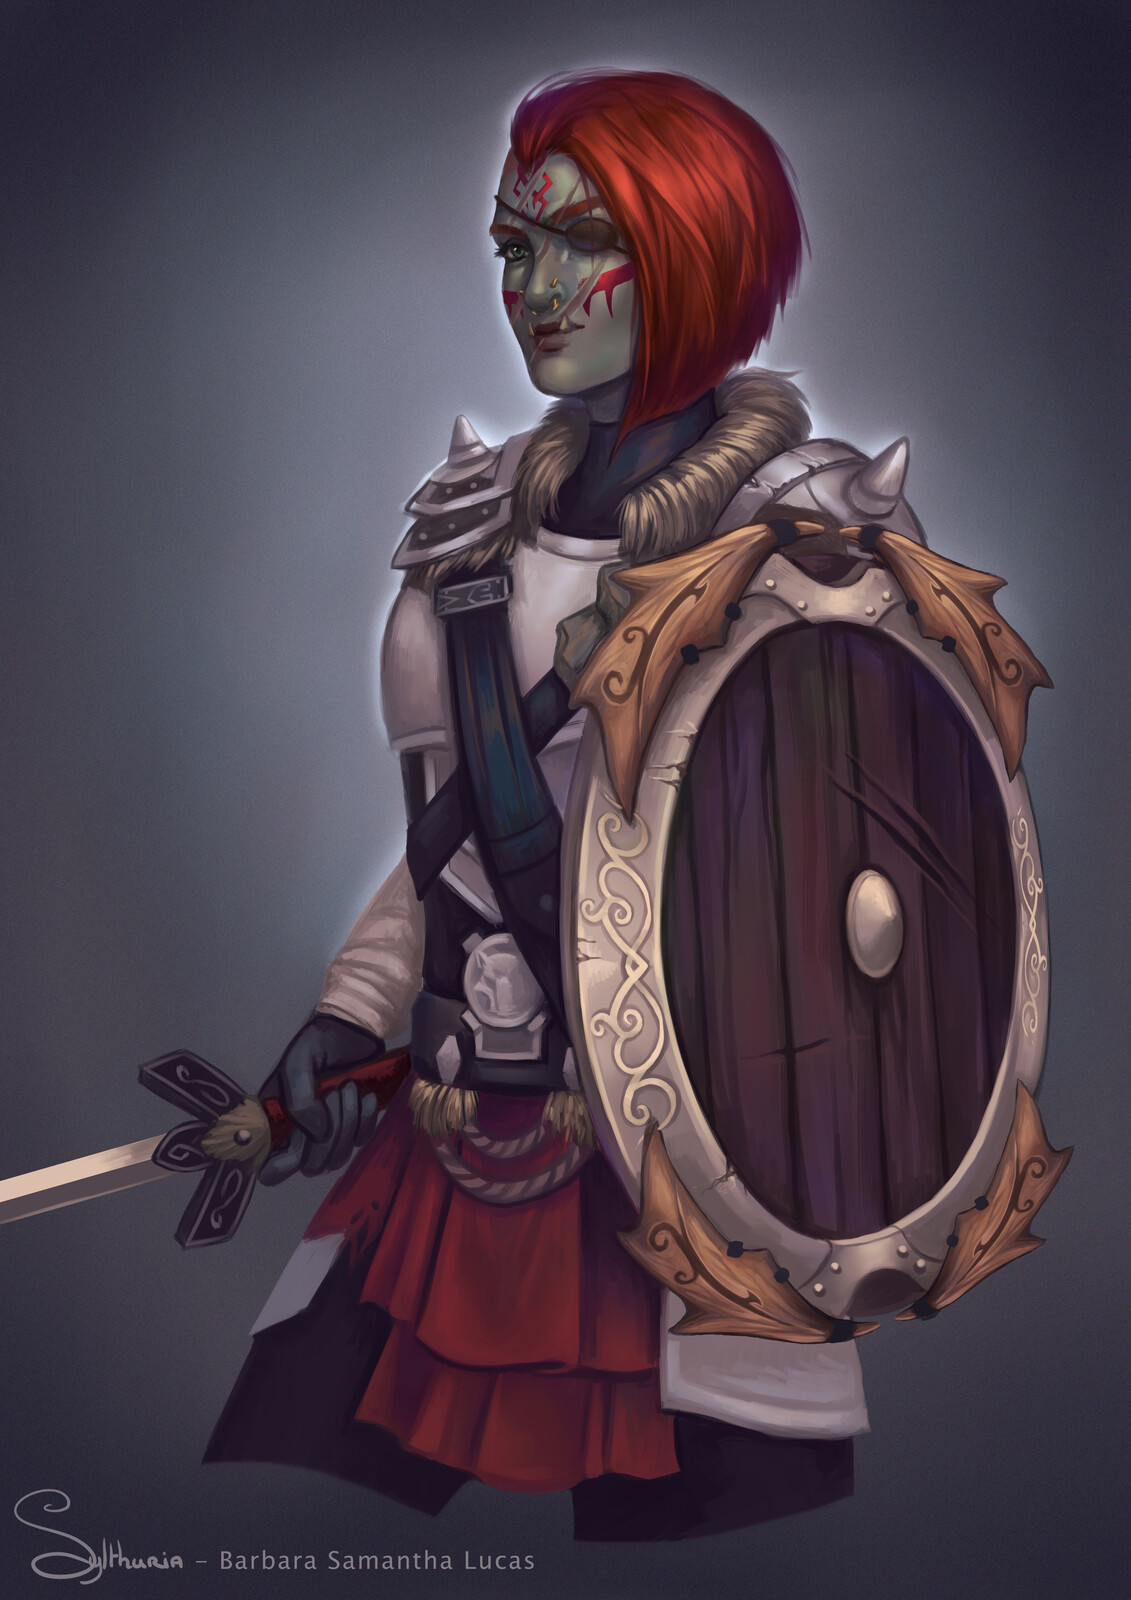 Orc - ESO character